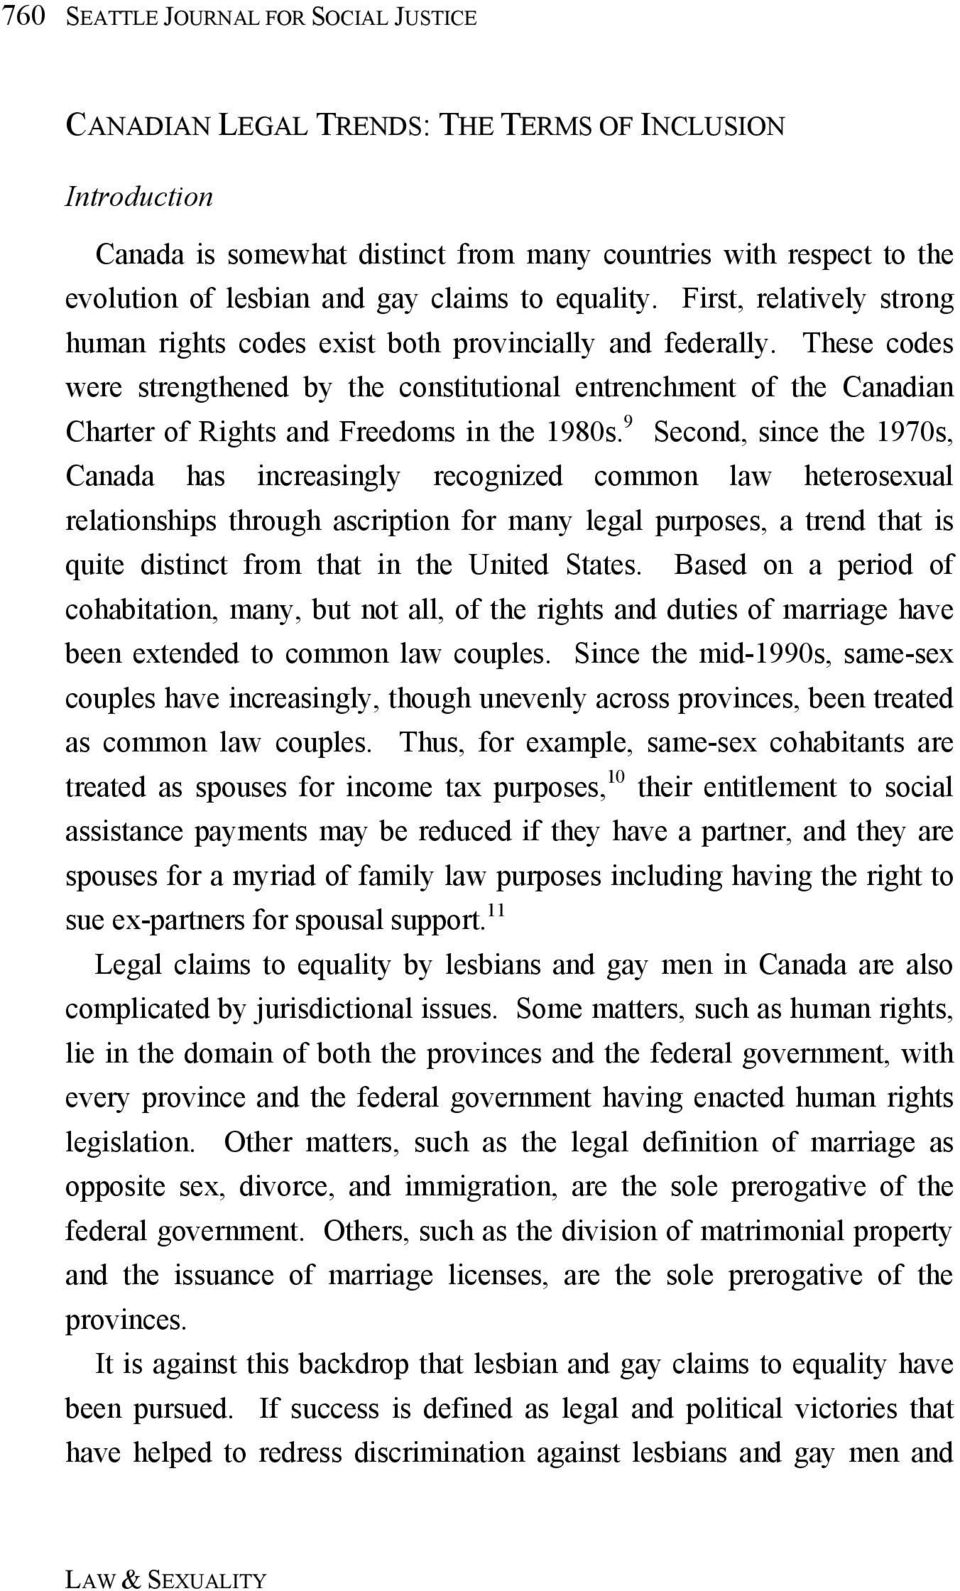 These codes were strengthened by the constitutional entrenchment of the Canadian Charter of Rights and Freedoms in the 1980s.